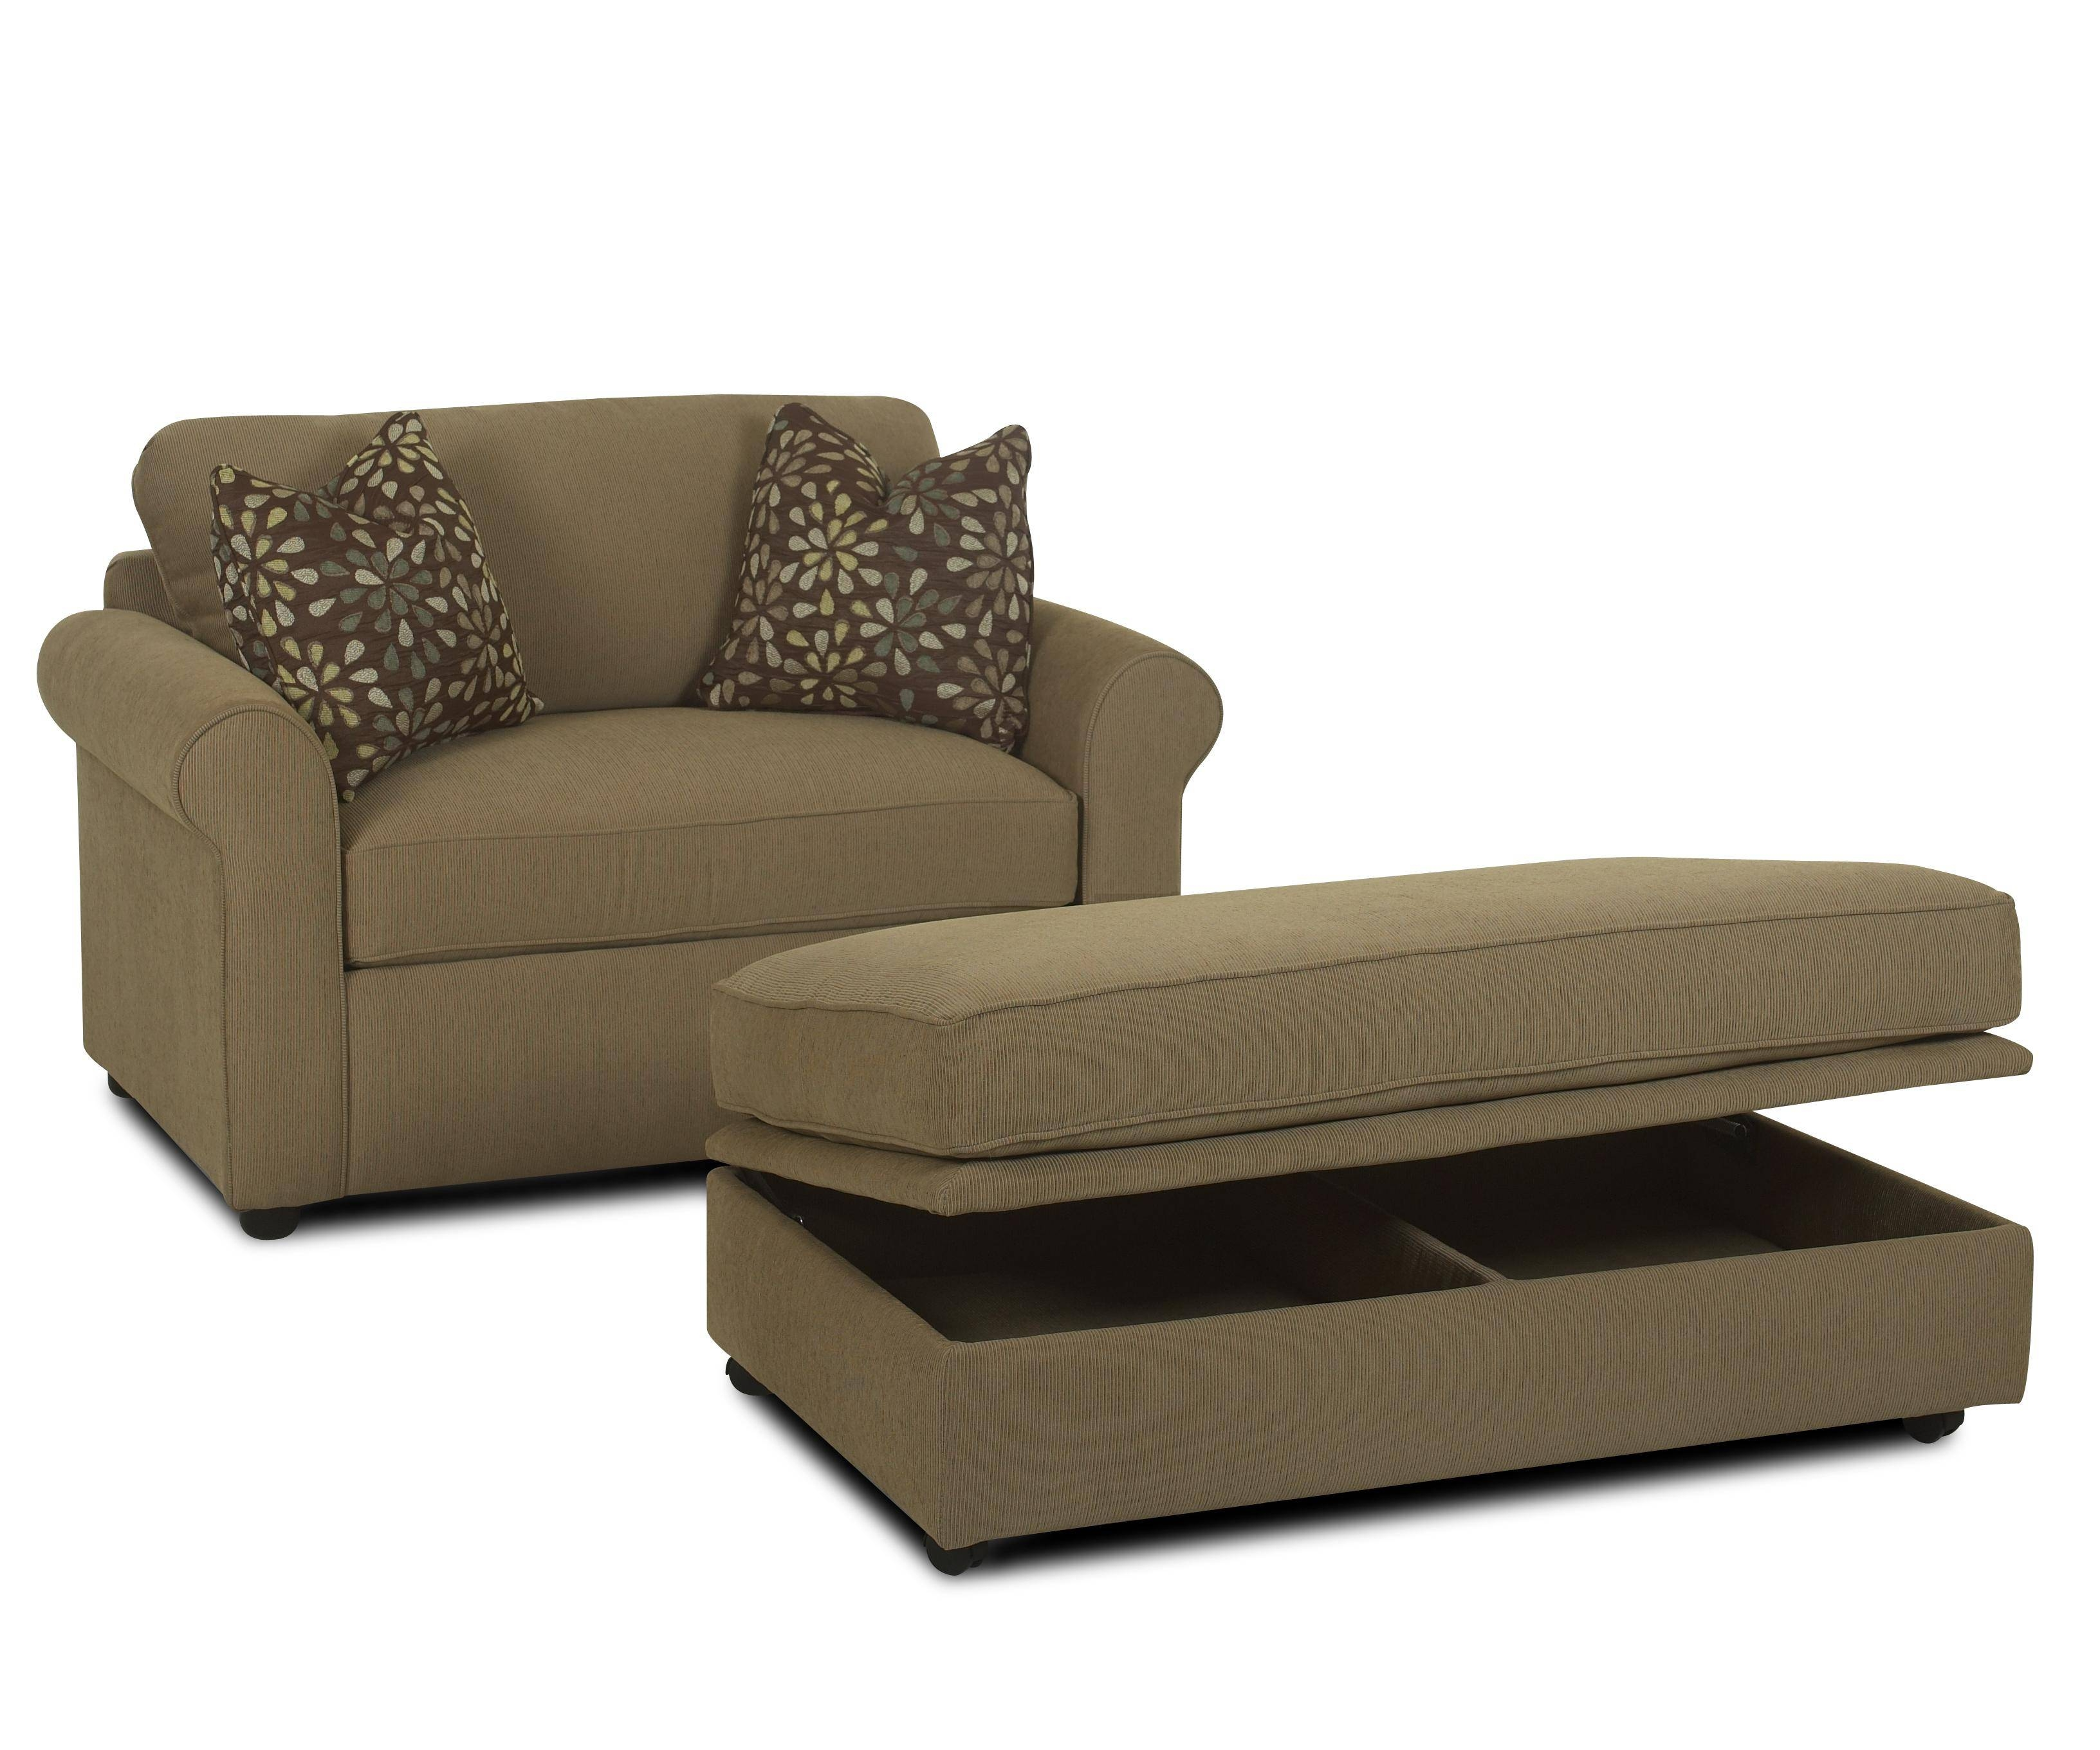 Furniture: Modern Living Room Furniture Design With Elegant Cheap within Sofa Chair And Ottoman (Image 4 of 15)